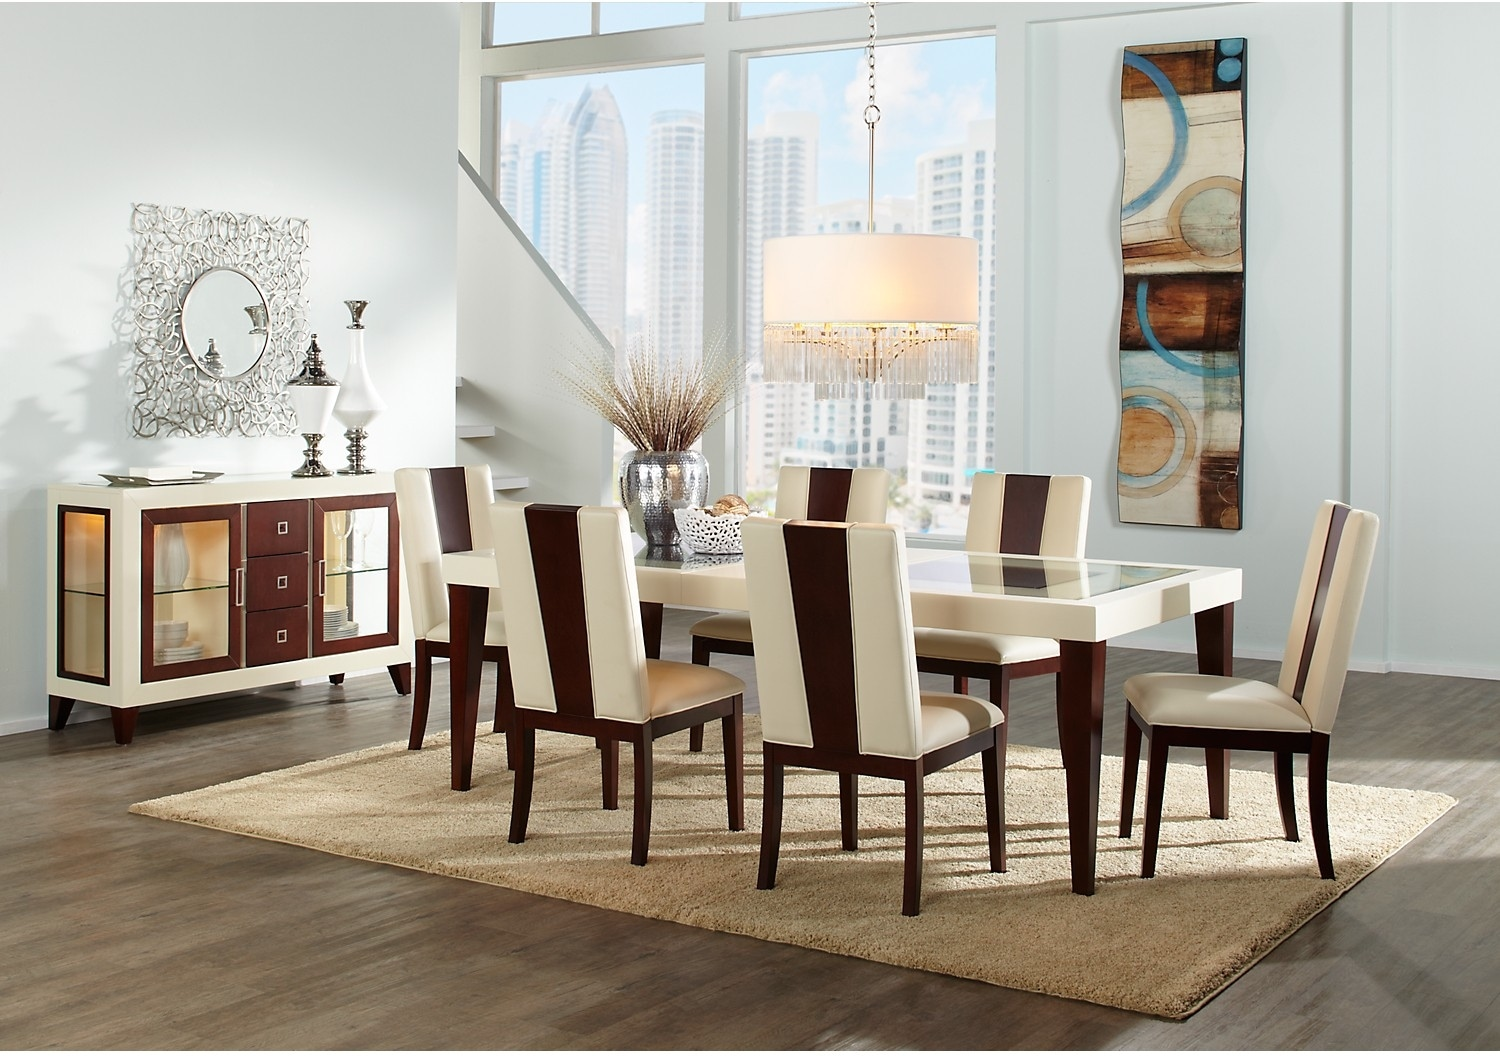 Dining Room Furniture - Zeno 8-Piece Dining Package